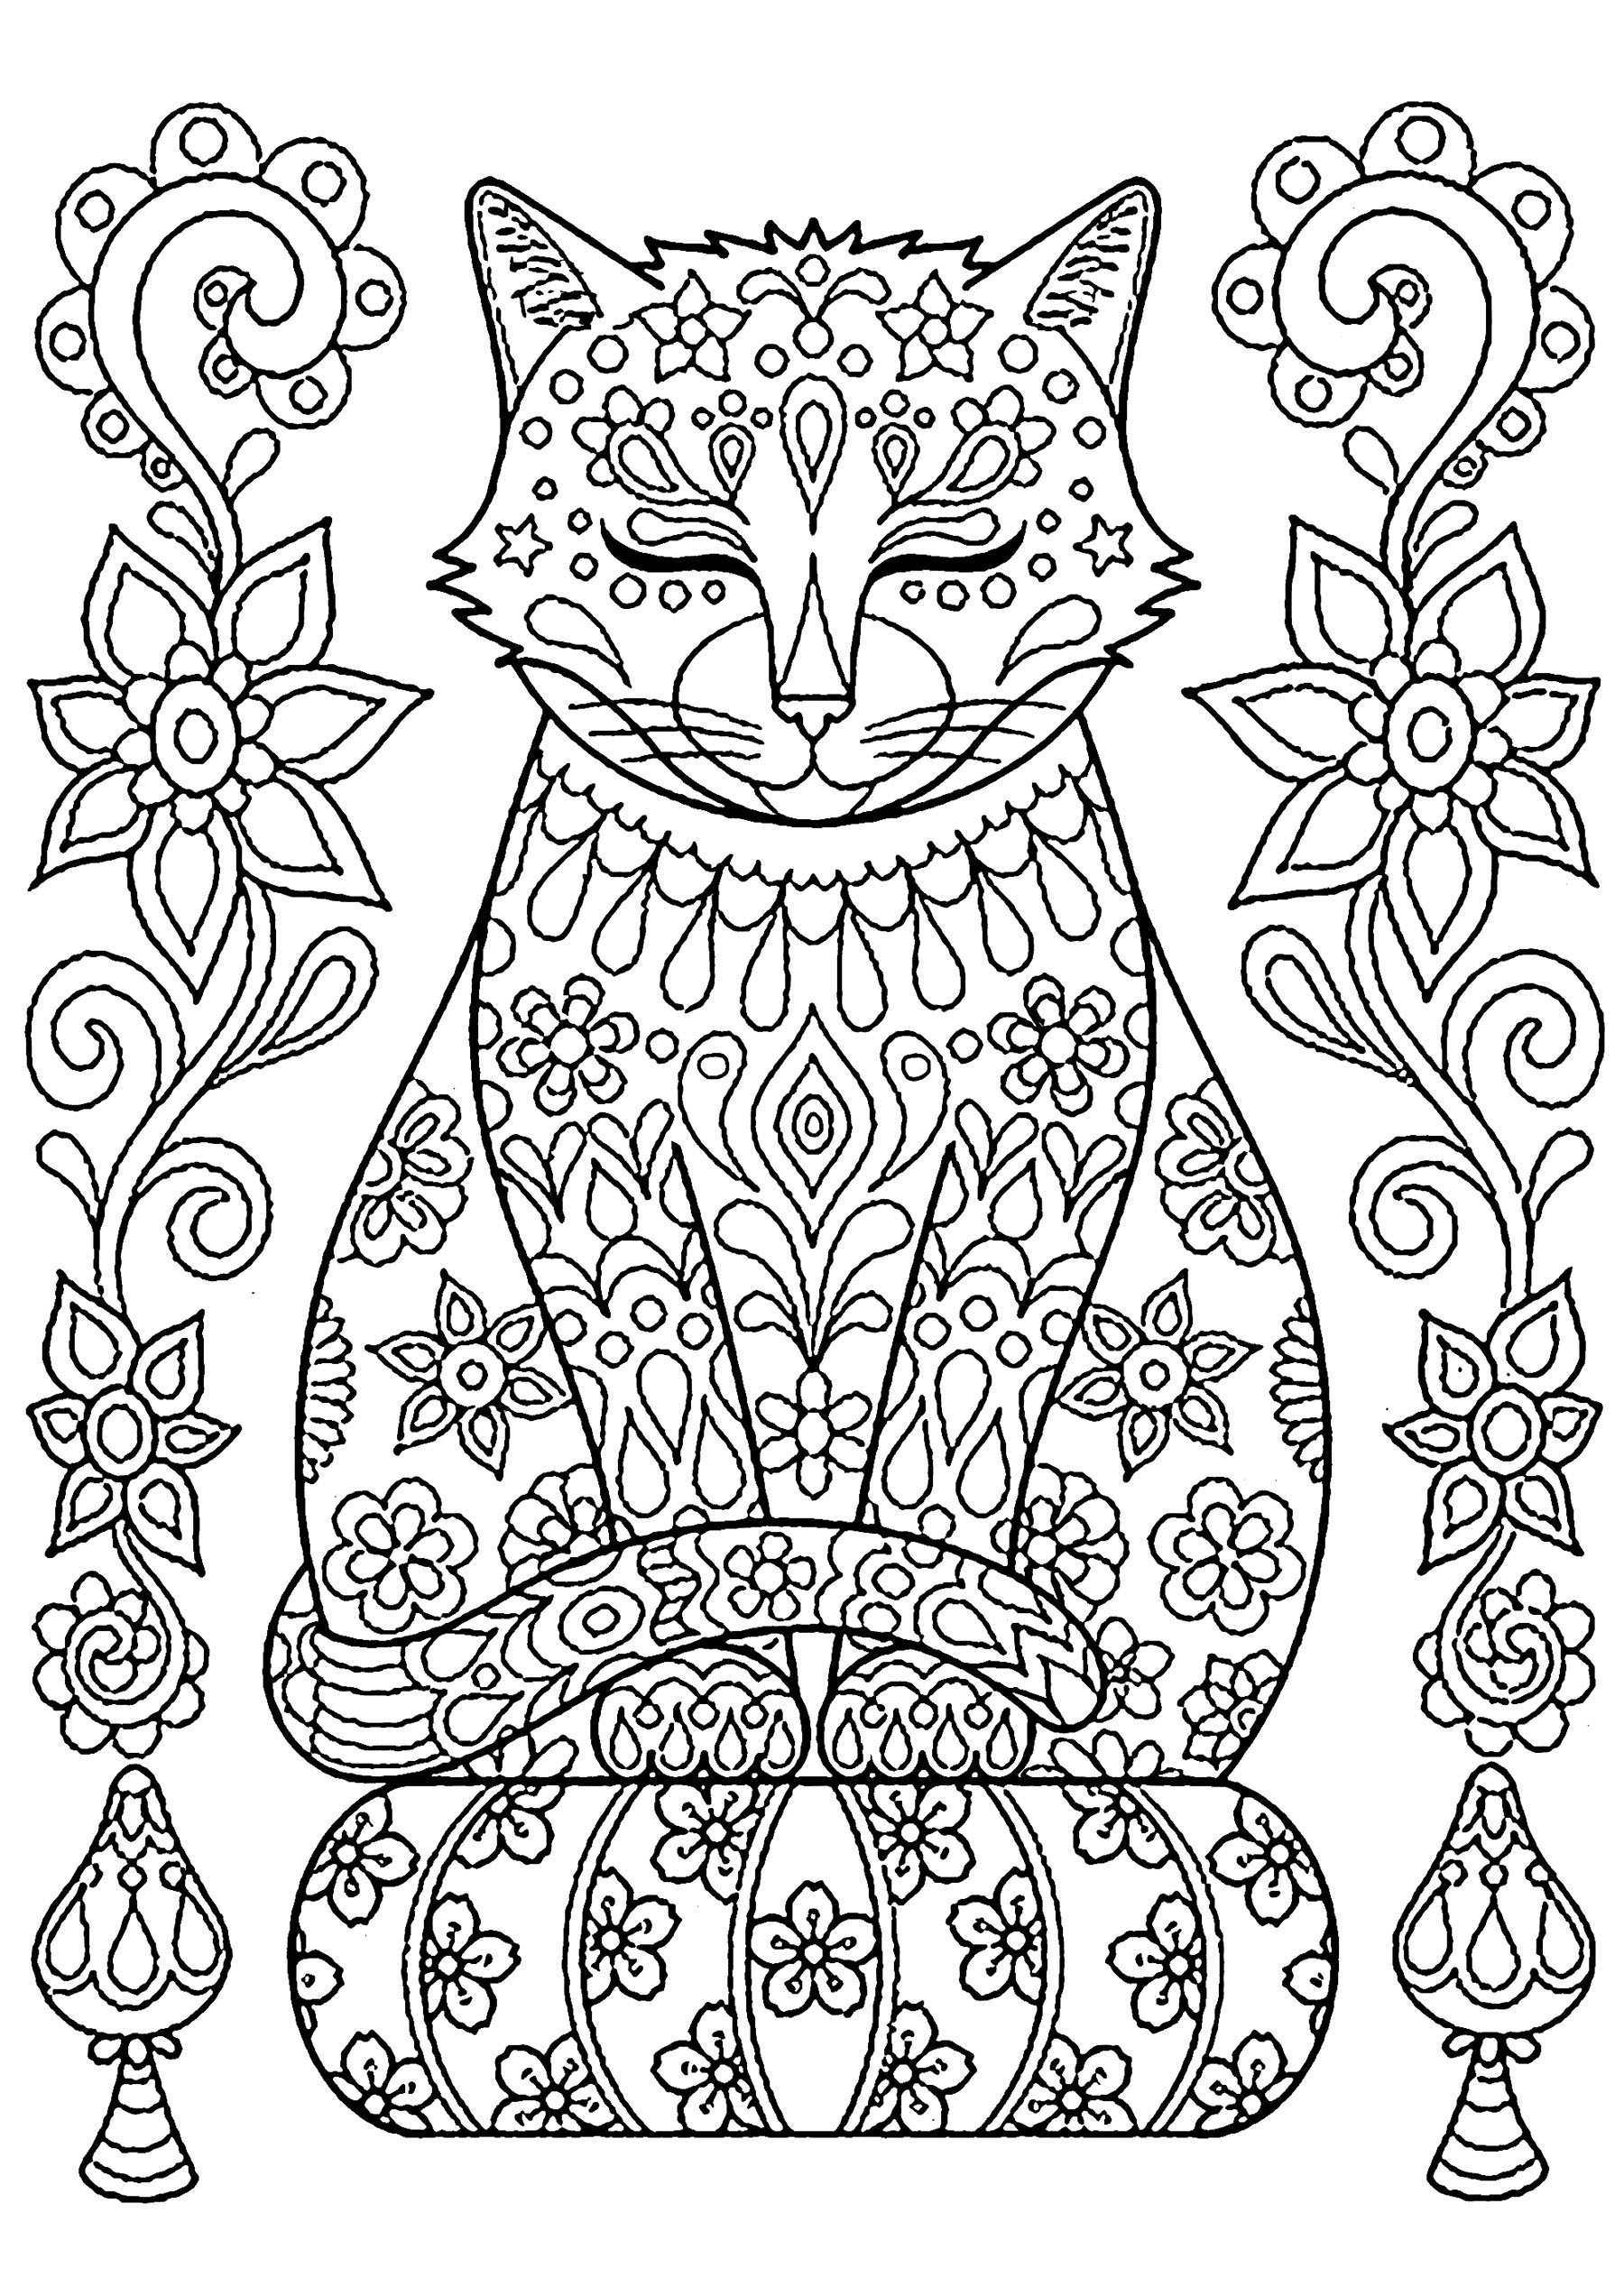 Cats to download - Cats Kids Coloring Pages